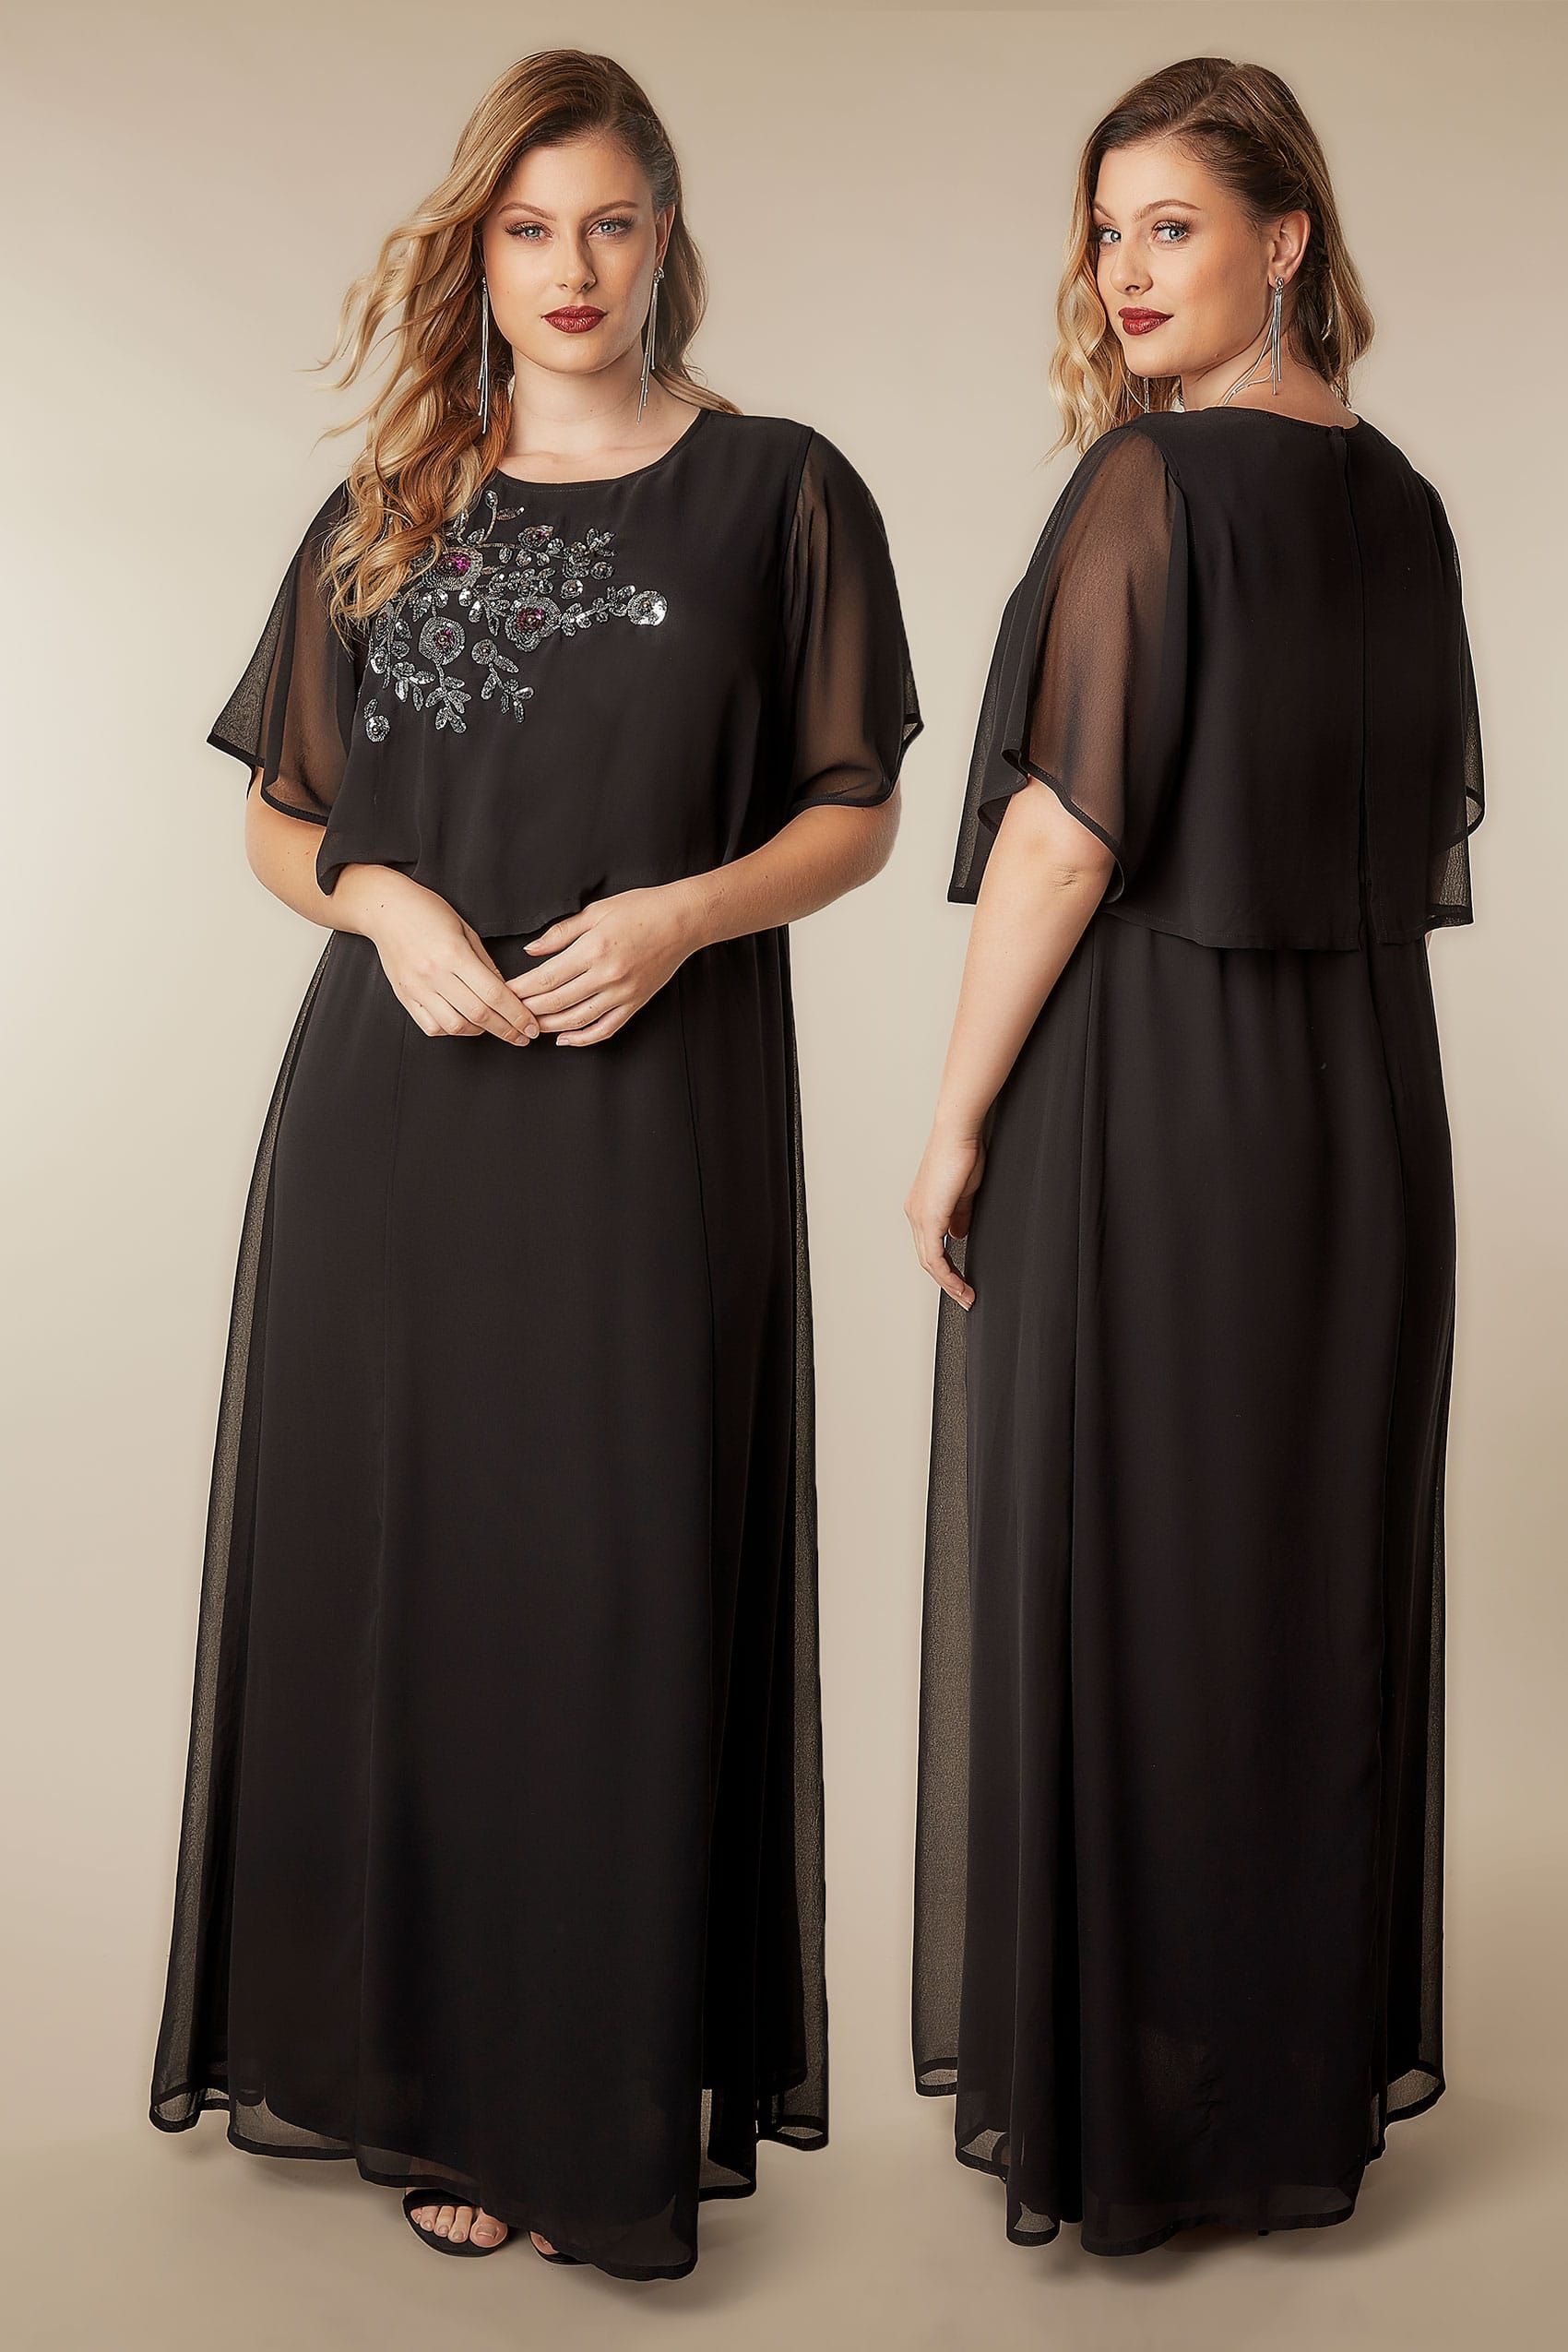 1c2439d8579 YOURS LONDON Black Sequin Floral Embellished Cape Sleeve Maxi Dress ...